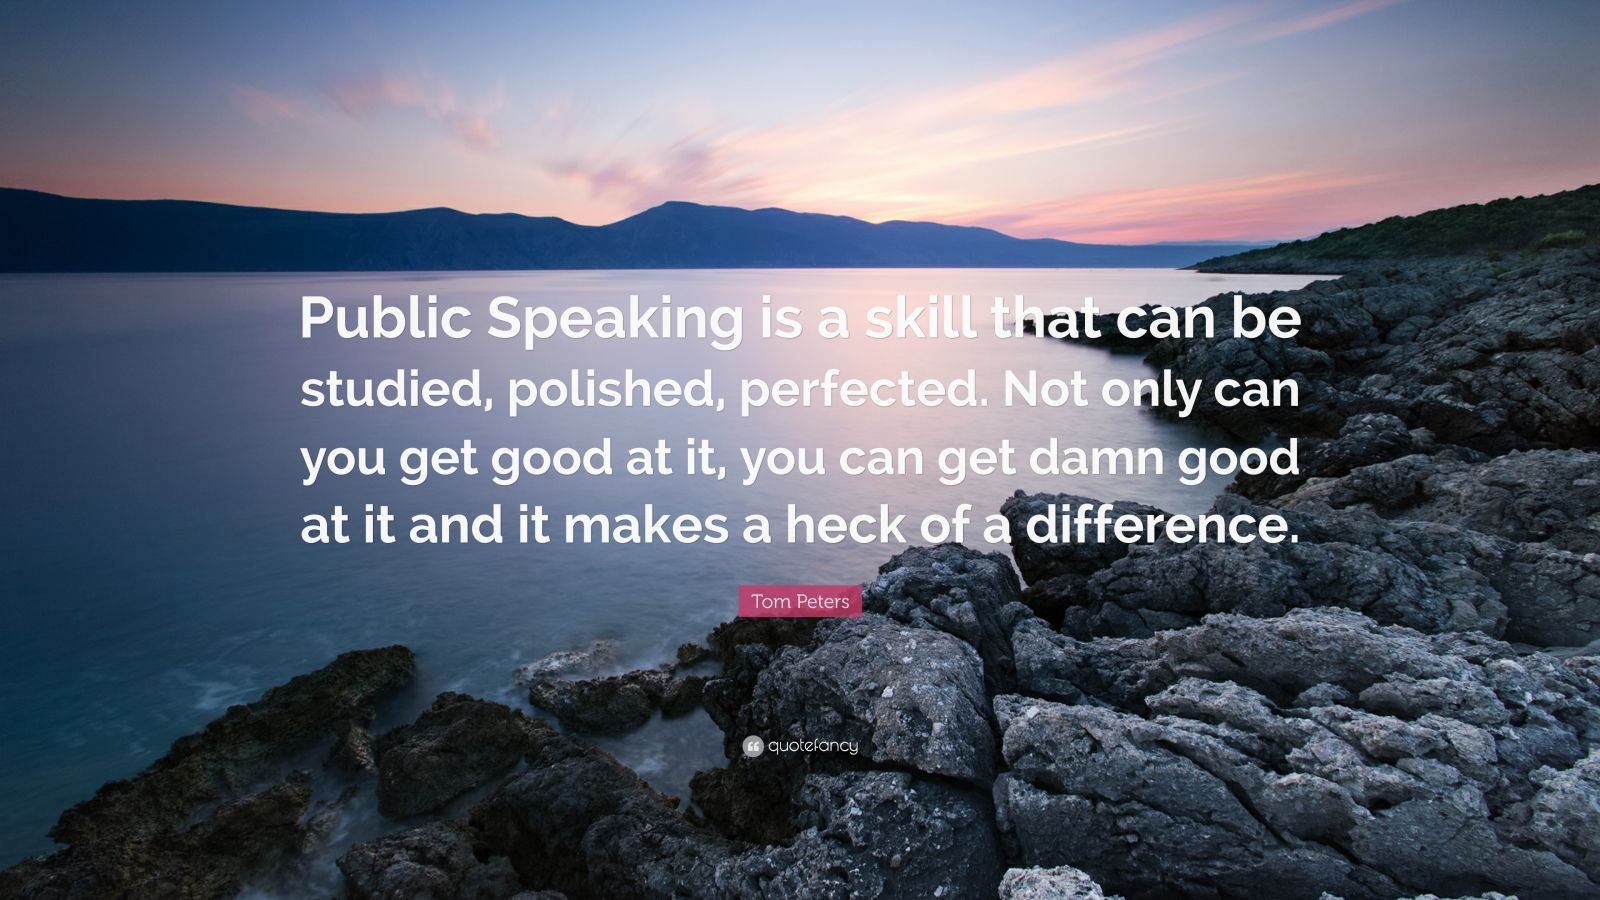 """Tom Peters Quote: """"Public Speaking is a skill that can be studied, polished, perfected. Not only can you get good at it, you can get damn good at it and it makes a heck of a difference."""""""